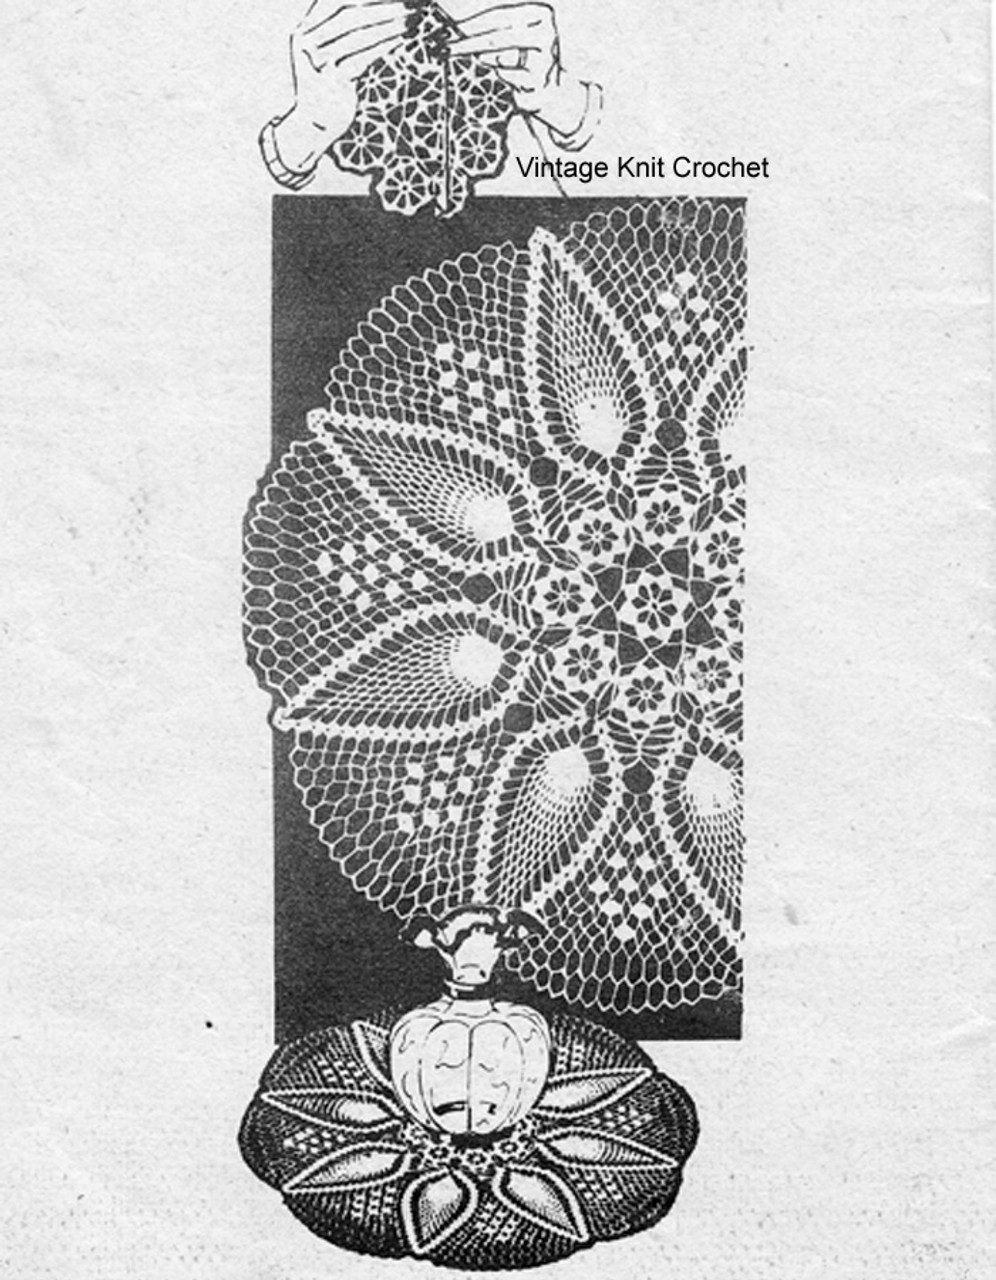 Centerpiece Crochet Pineapple Doily pattern, Laura Wheeler 939